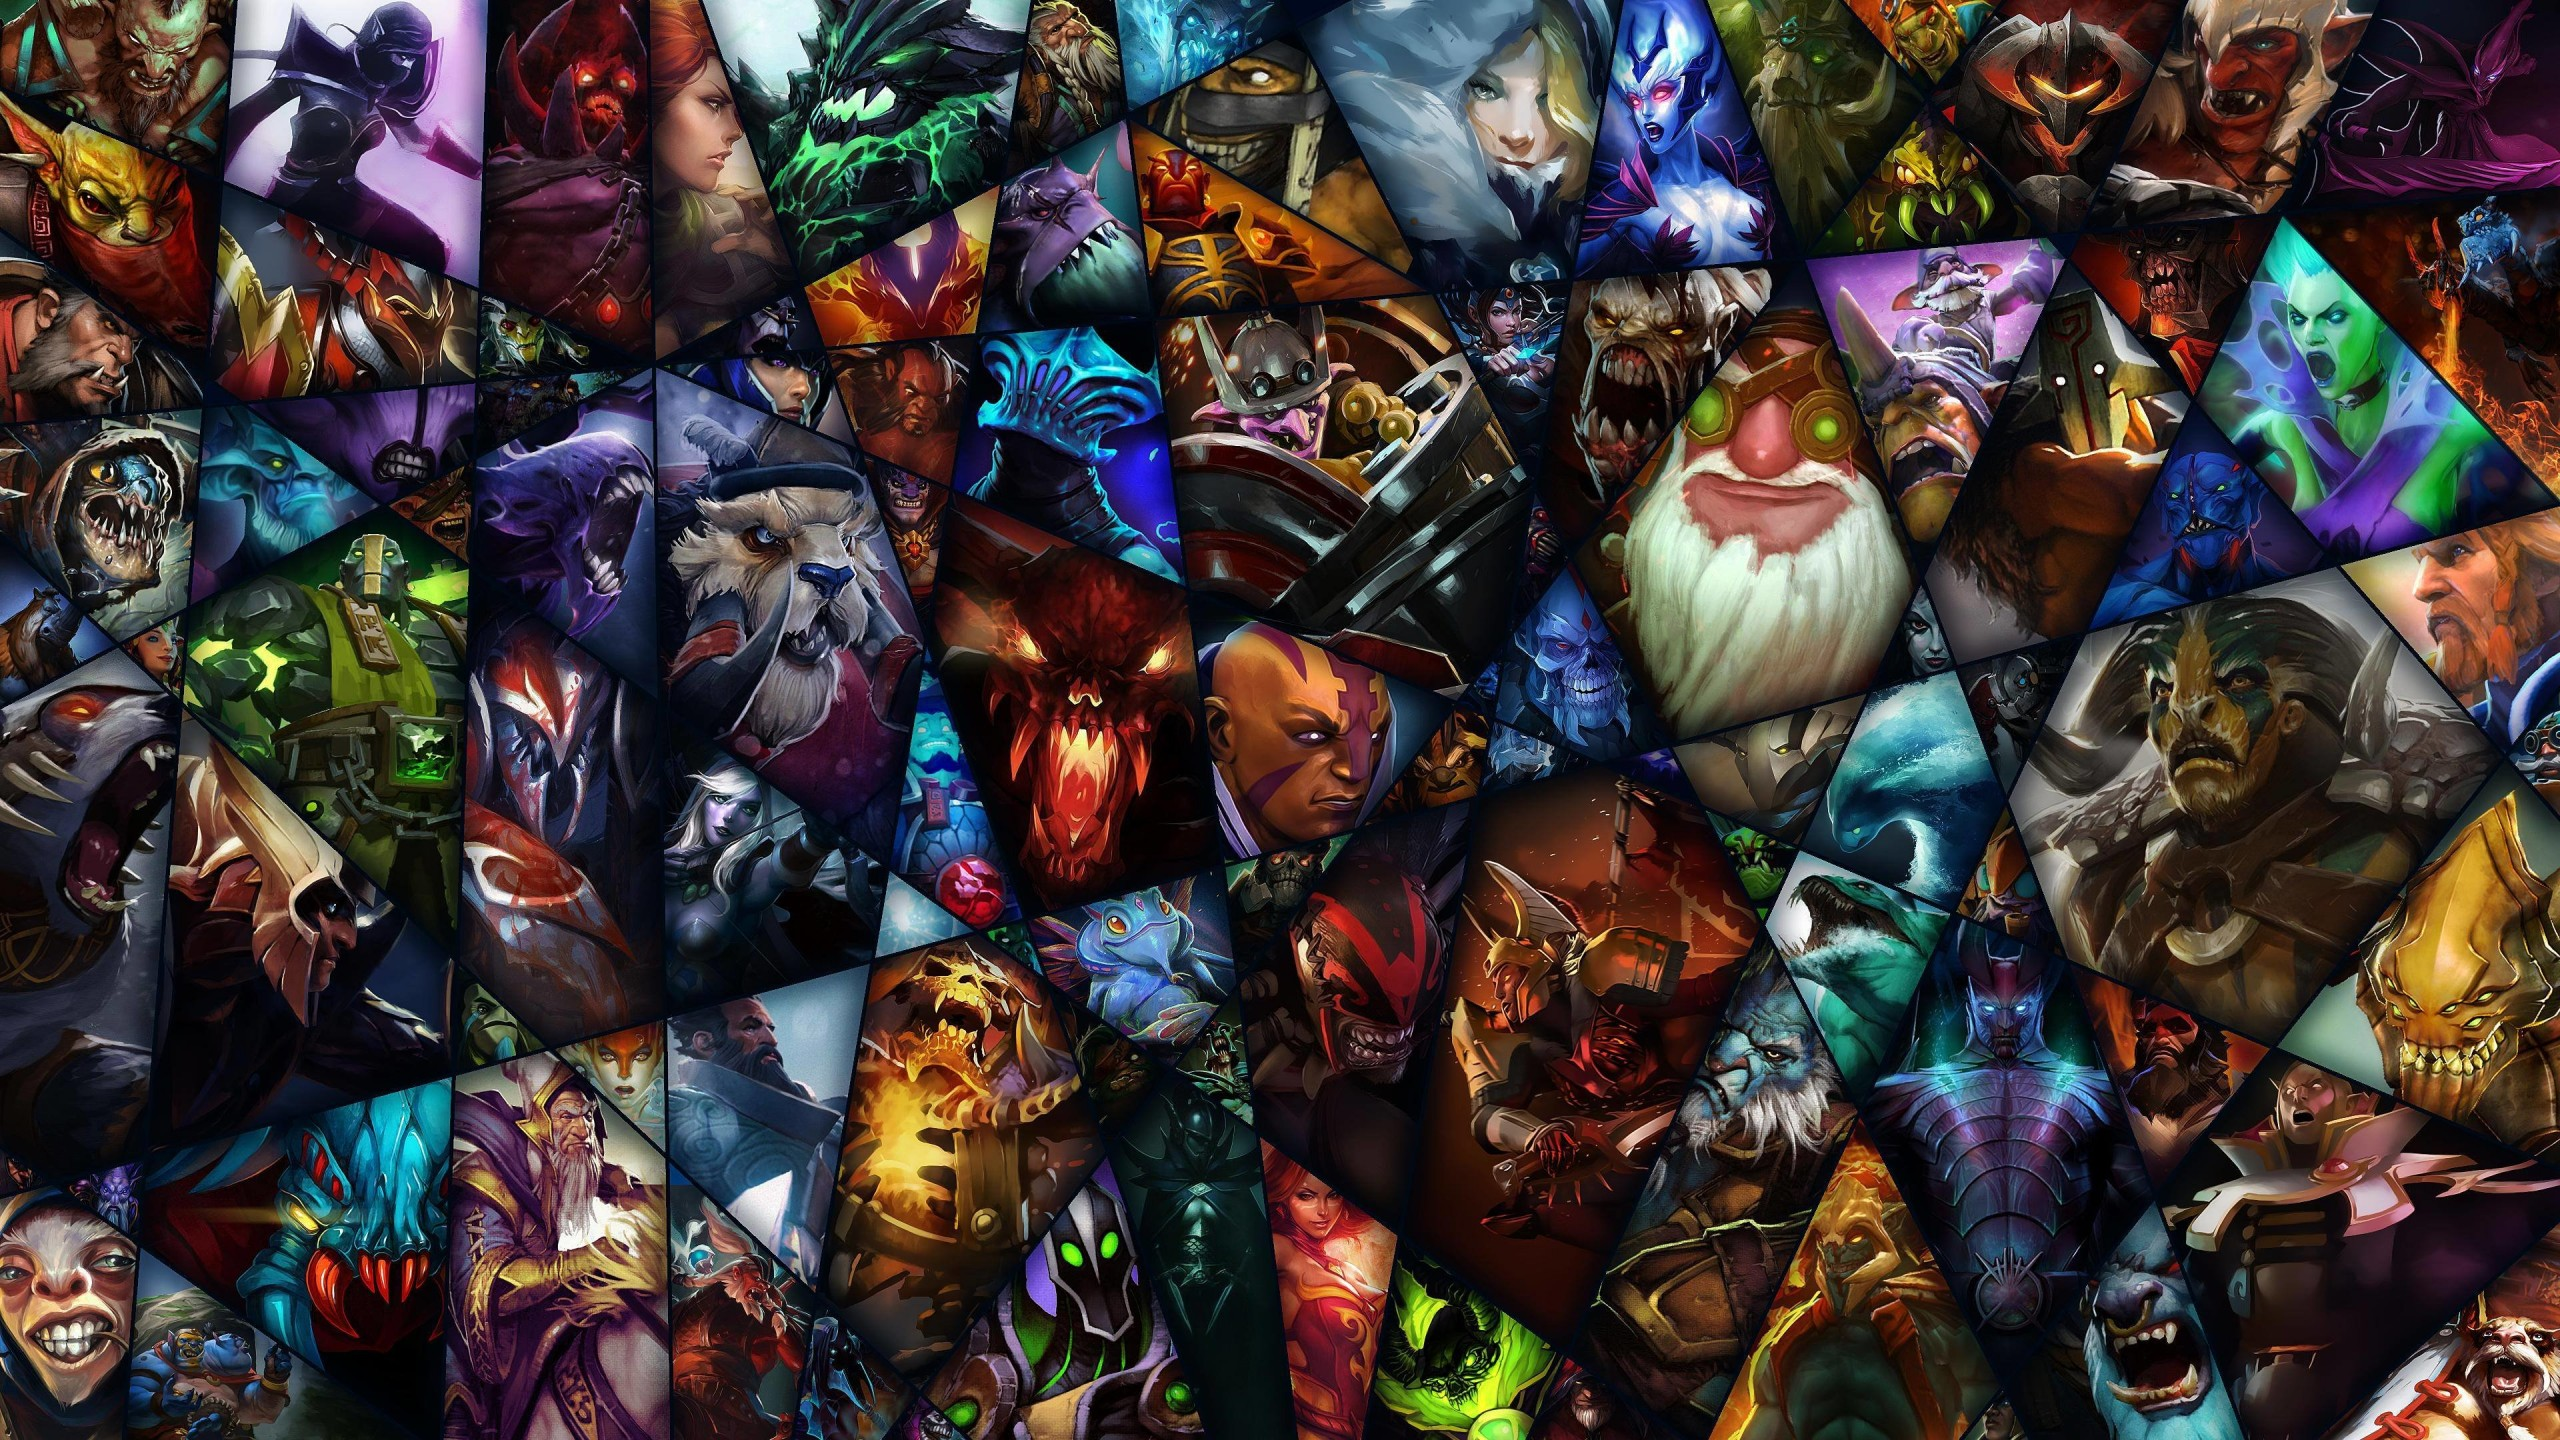 Download Dota 2 Hd Wallpaper For 2560 X 1440 Hdwallpapers Net